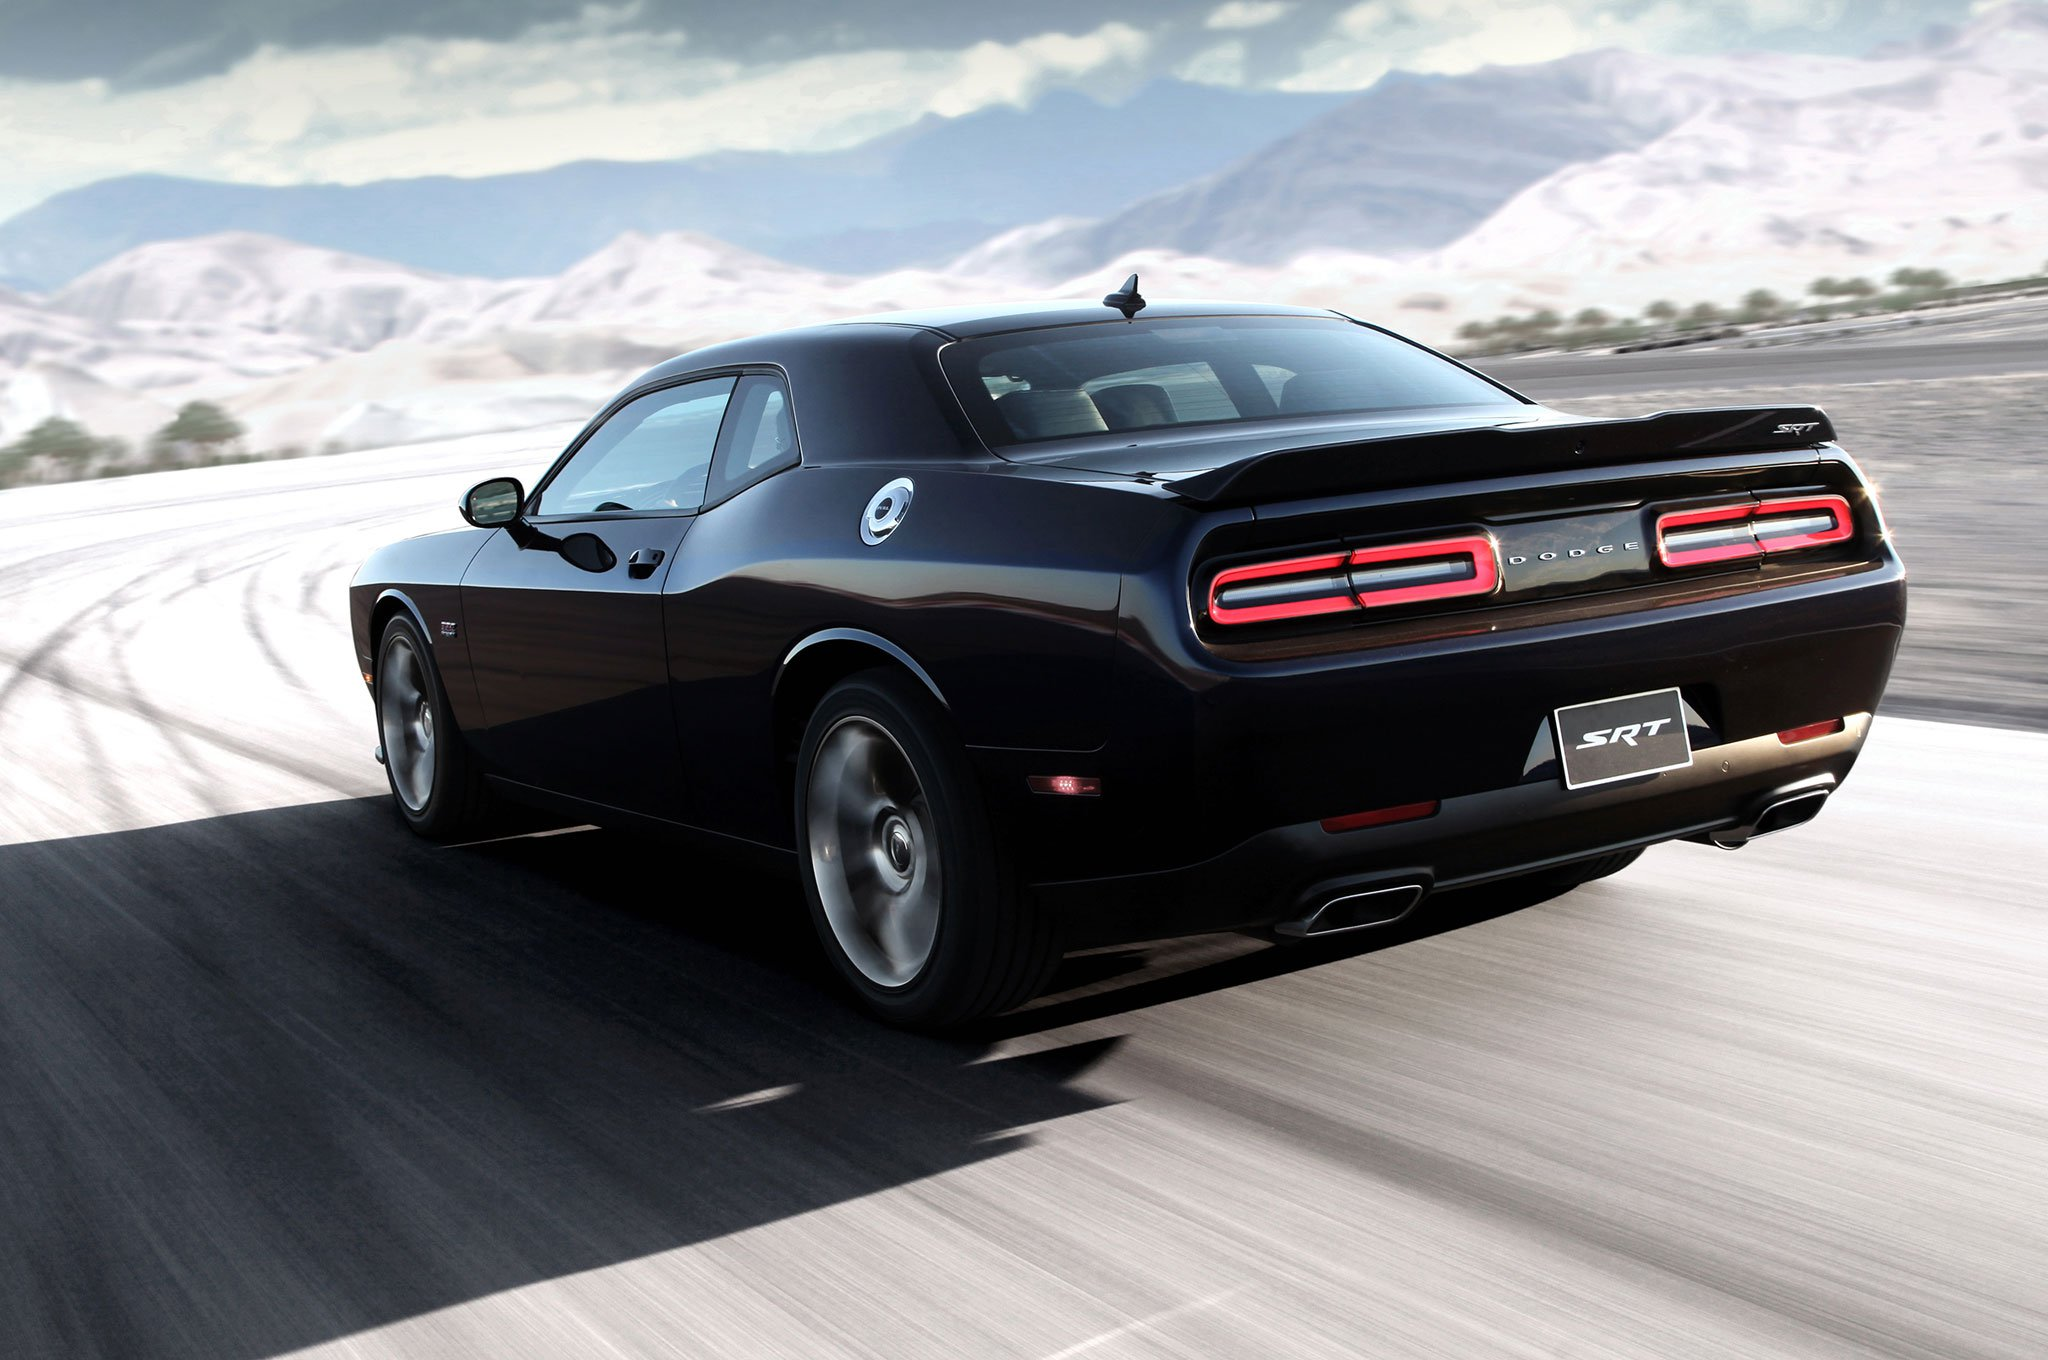 Тест-драйв Dodge Challenger SRT (2015)